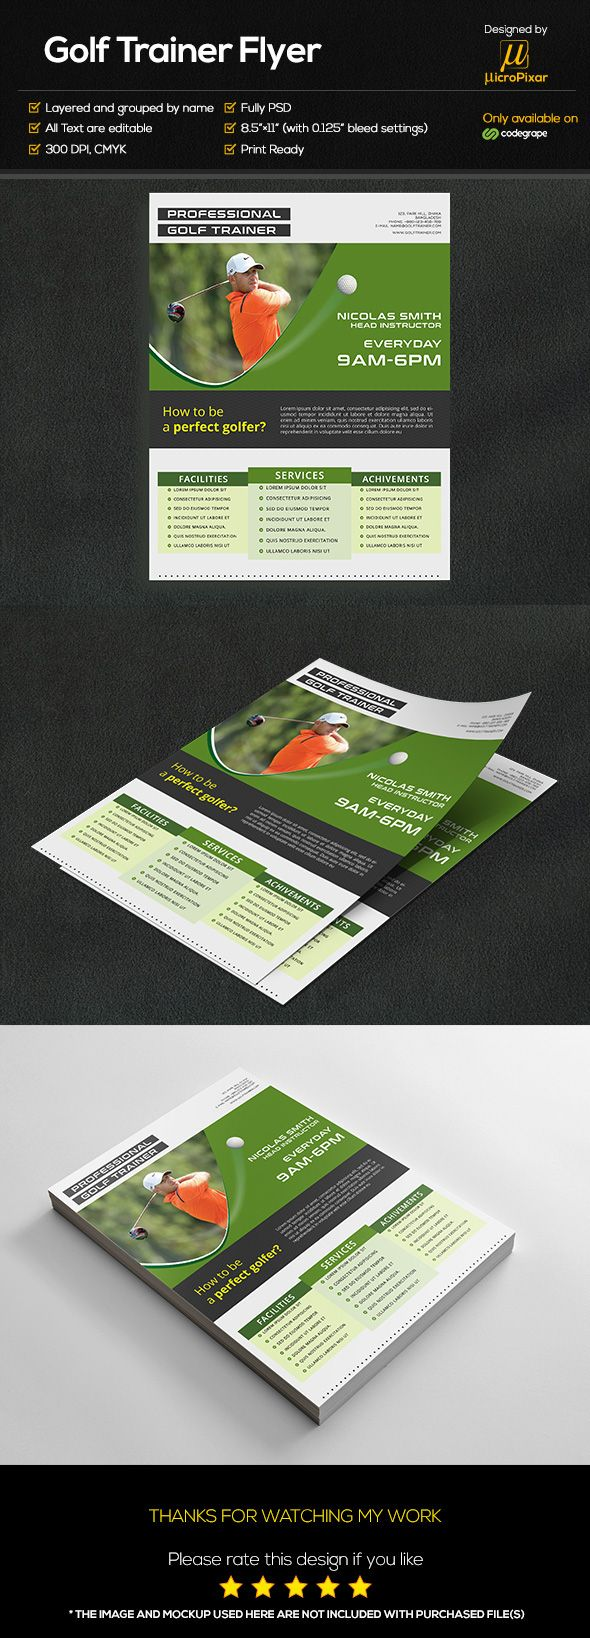 """Check out my @Behance project: """"Golf Trainer Flyer on CodeGrape"""" https://www.behance.net/gallery/42685837/Golf-Trainer-Flyer-on-CodeGrape"""